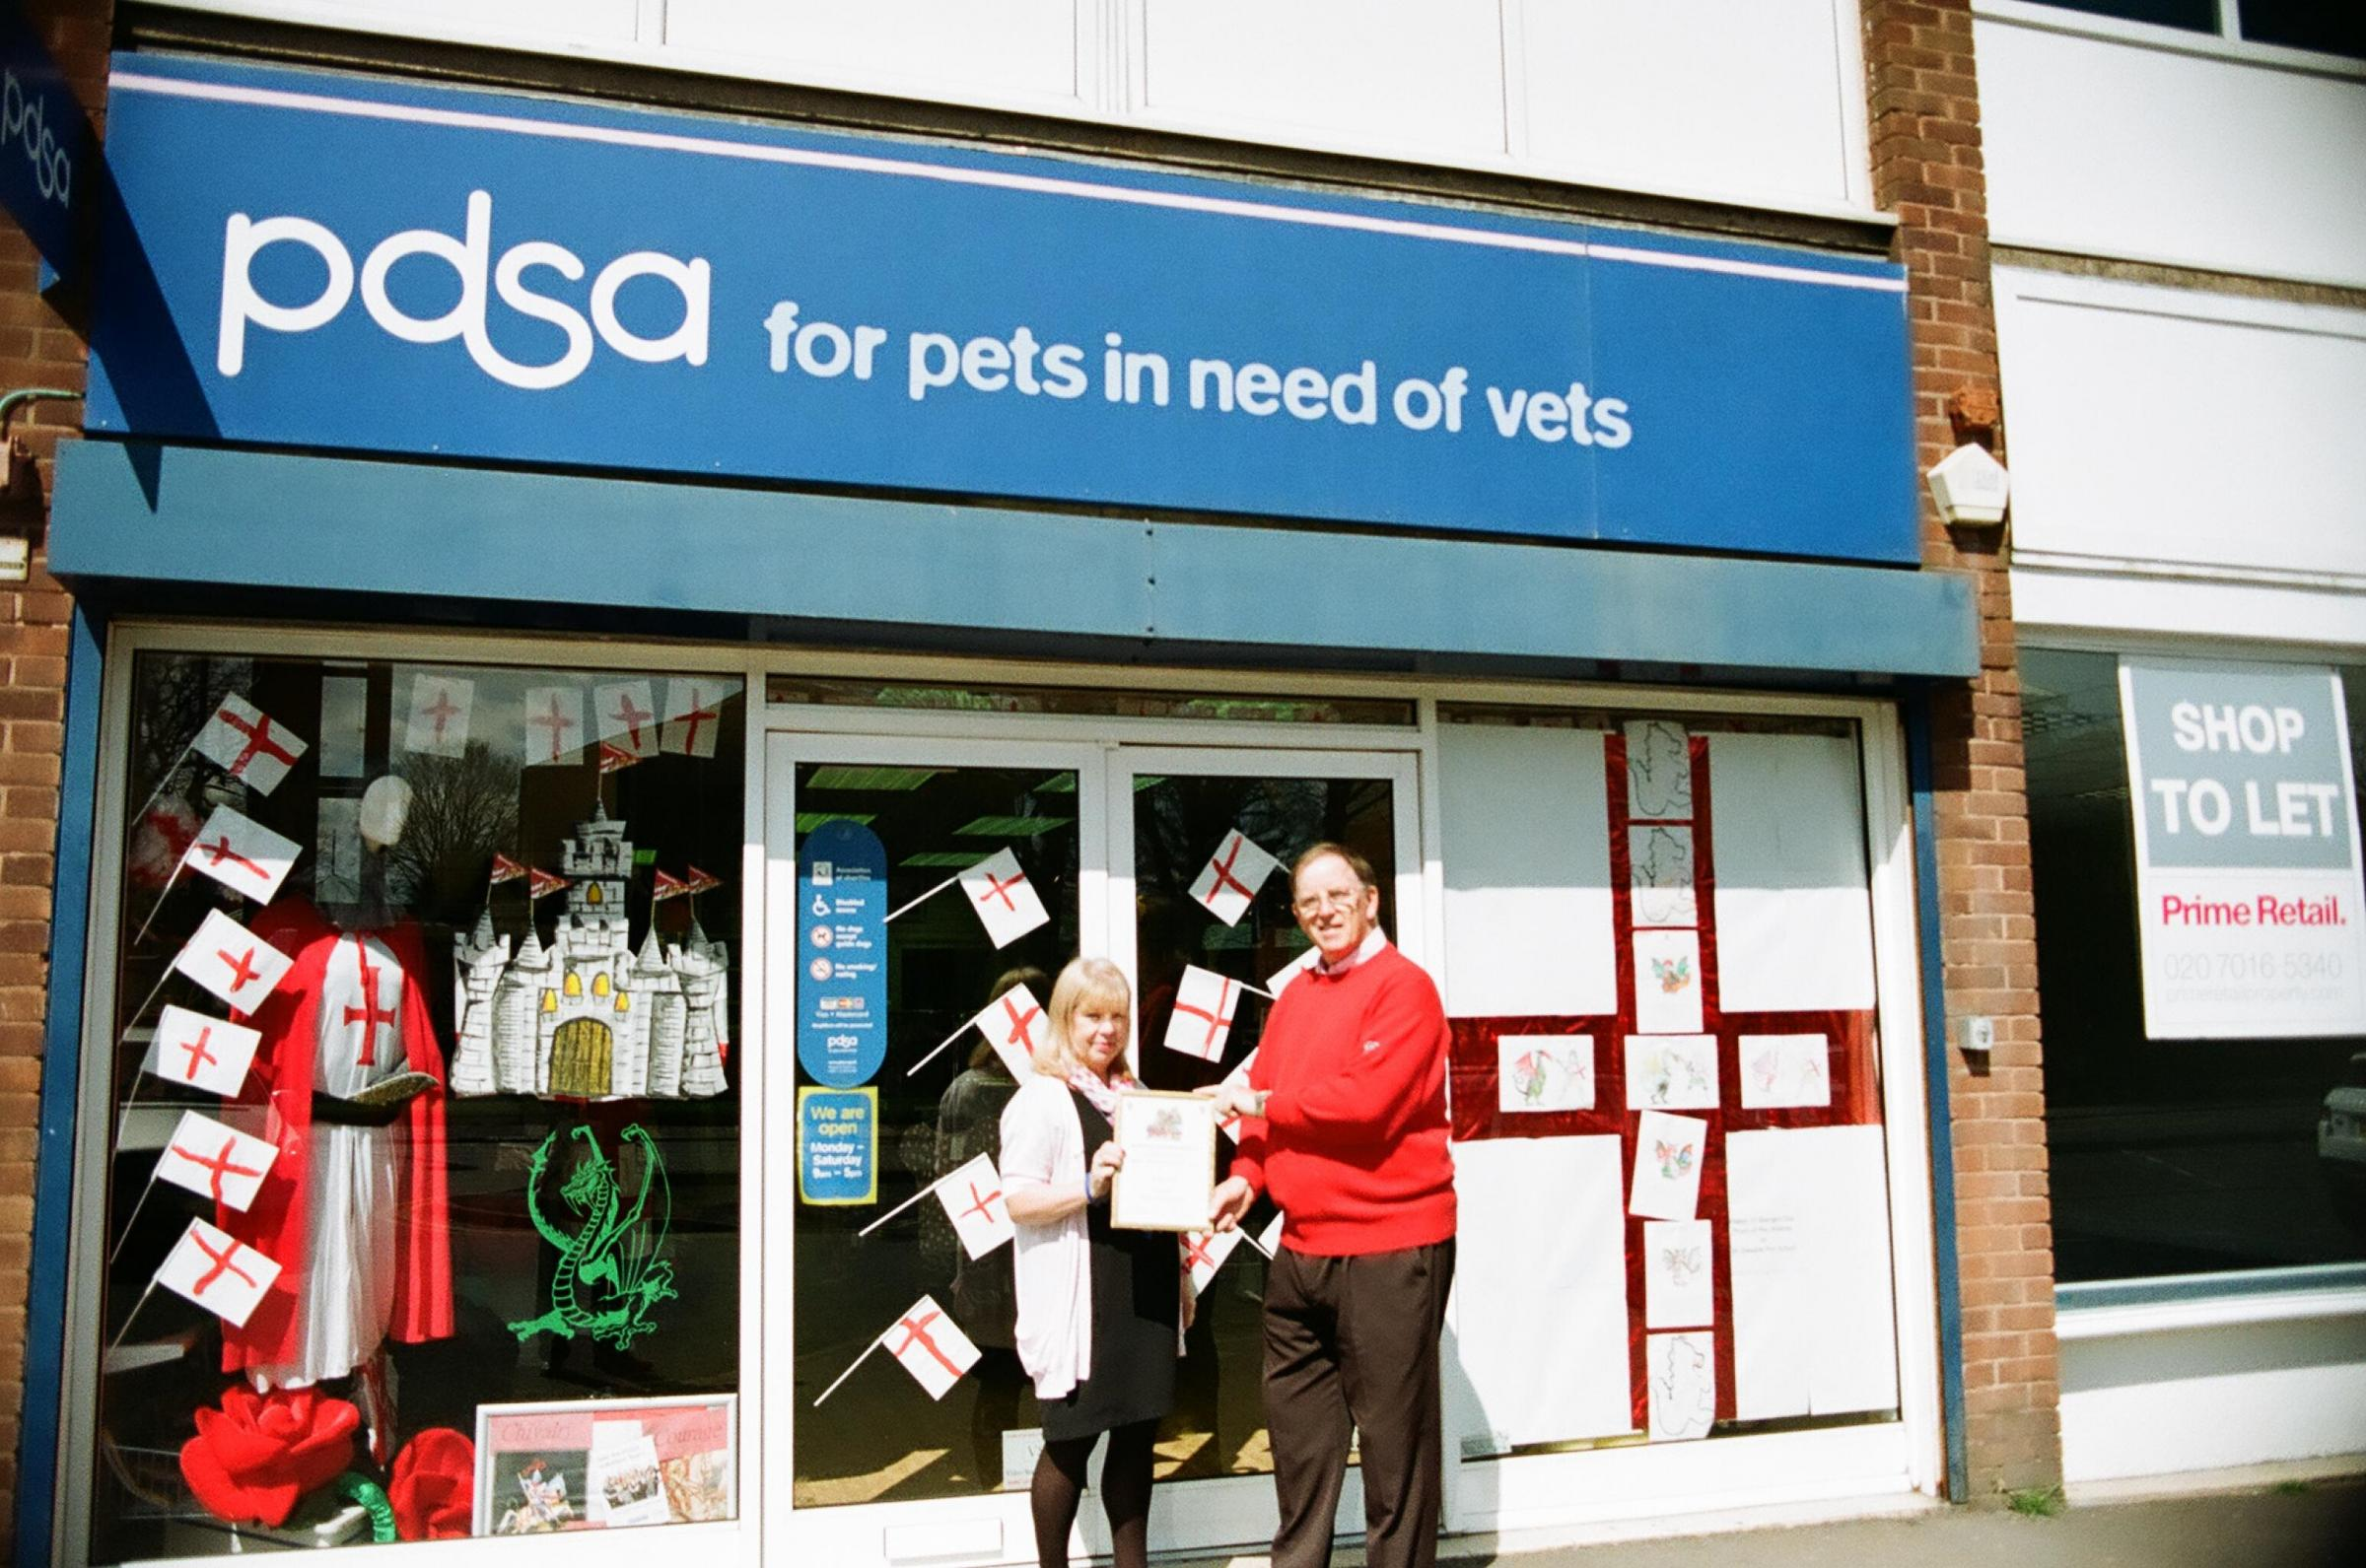 PATRIOTIC: The PDSA charity shop has been named the winner of the St George's Day window dressing competiti